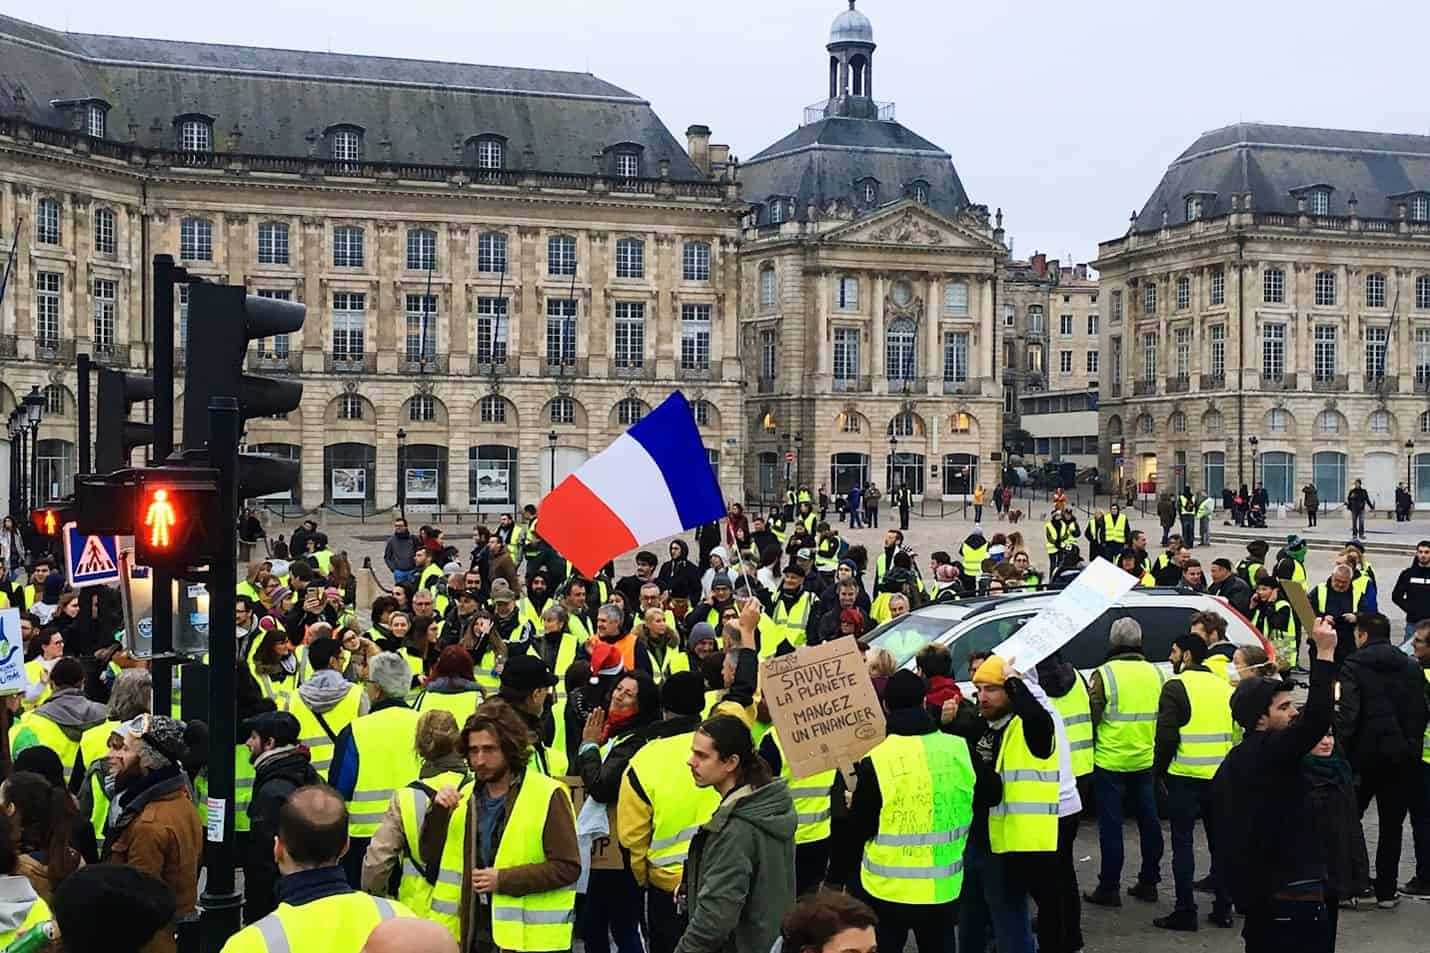 France: The Yellow Vests and their social media-driven tax revolt